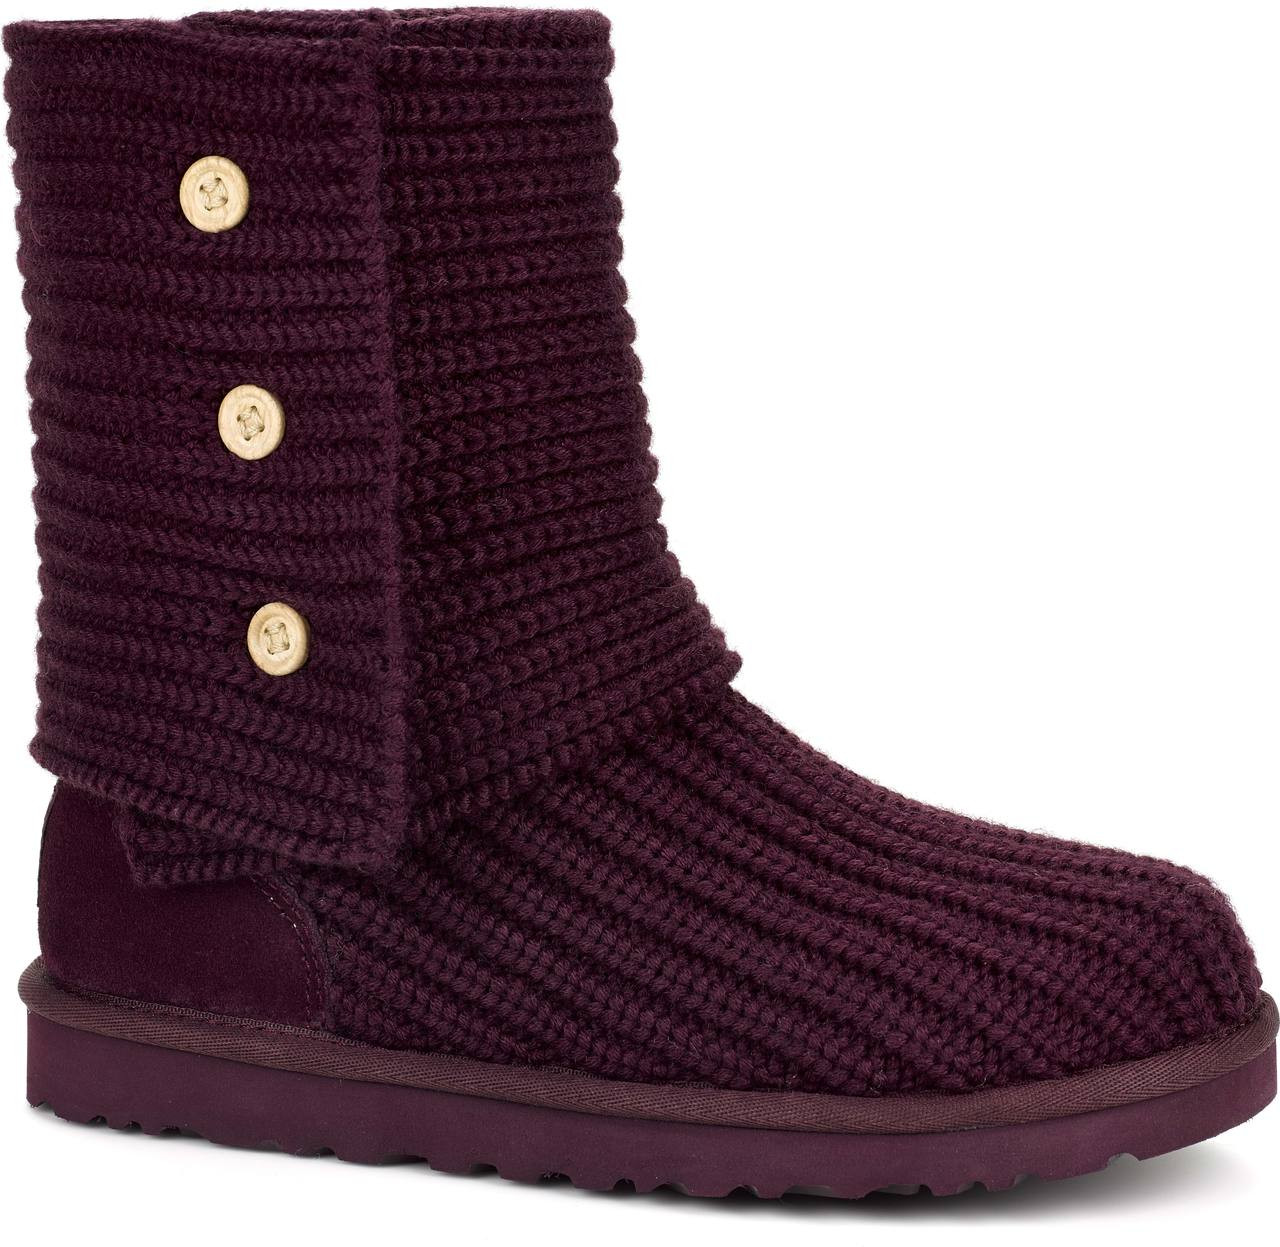 91da4535a63 UGG Australia Women's Classic Cardy (Available in Multiple Colors)